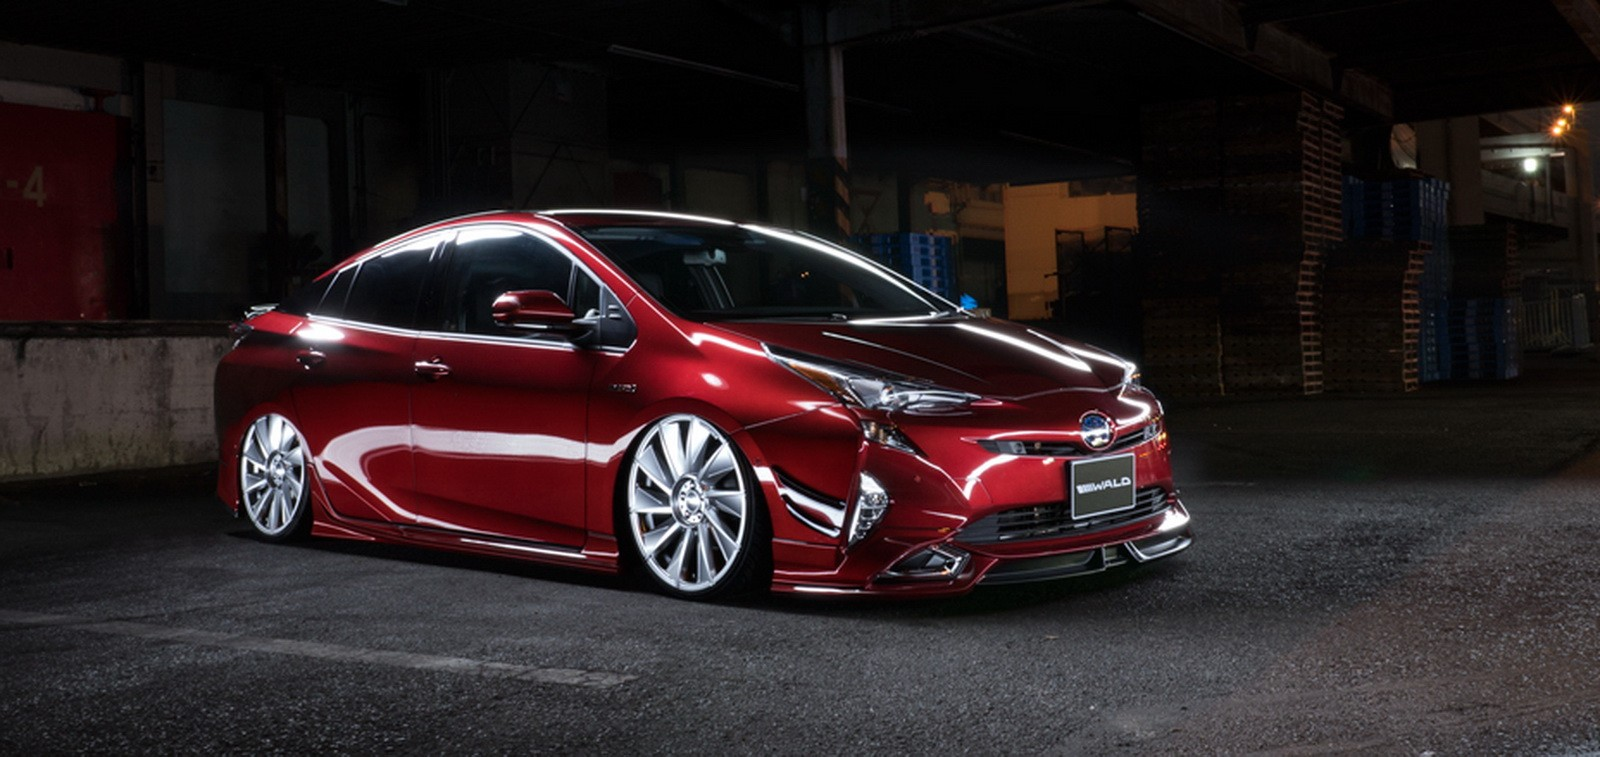 2016 Prius Body Kit >> 2016 Toyota Prius Tuned by Wald Looks Decent - autoevolution